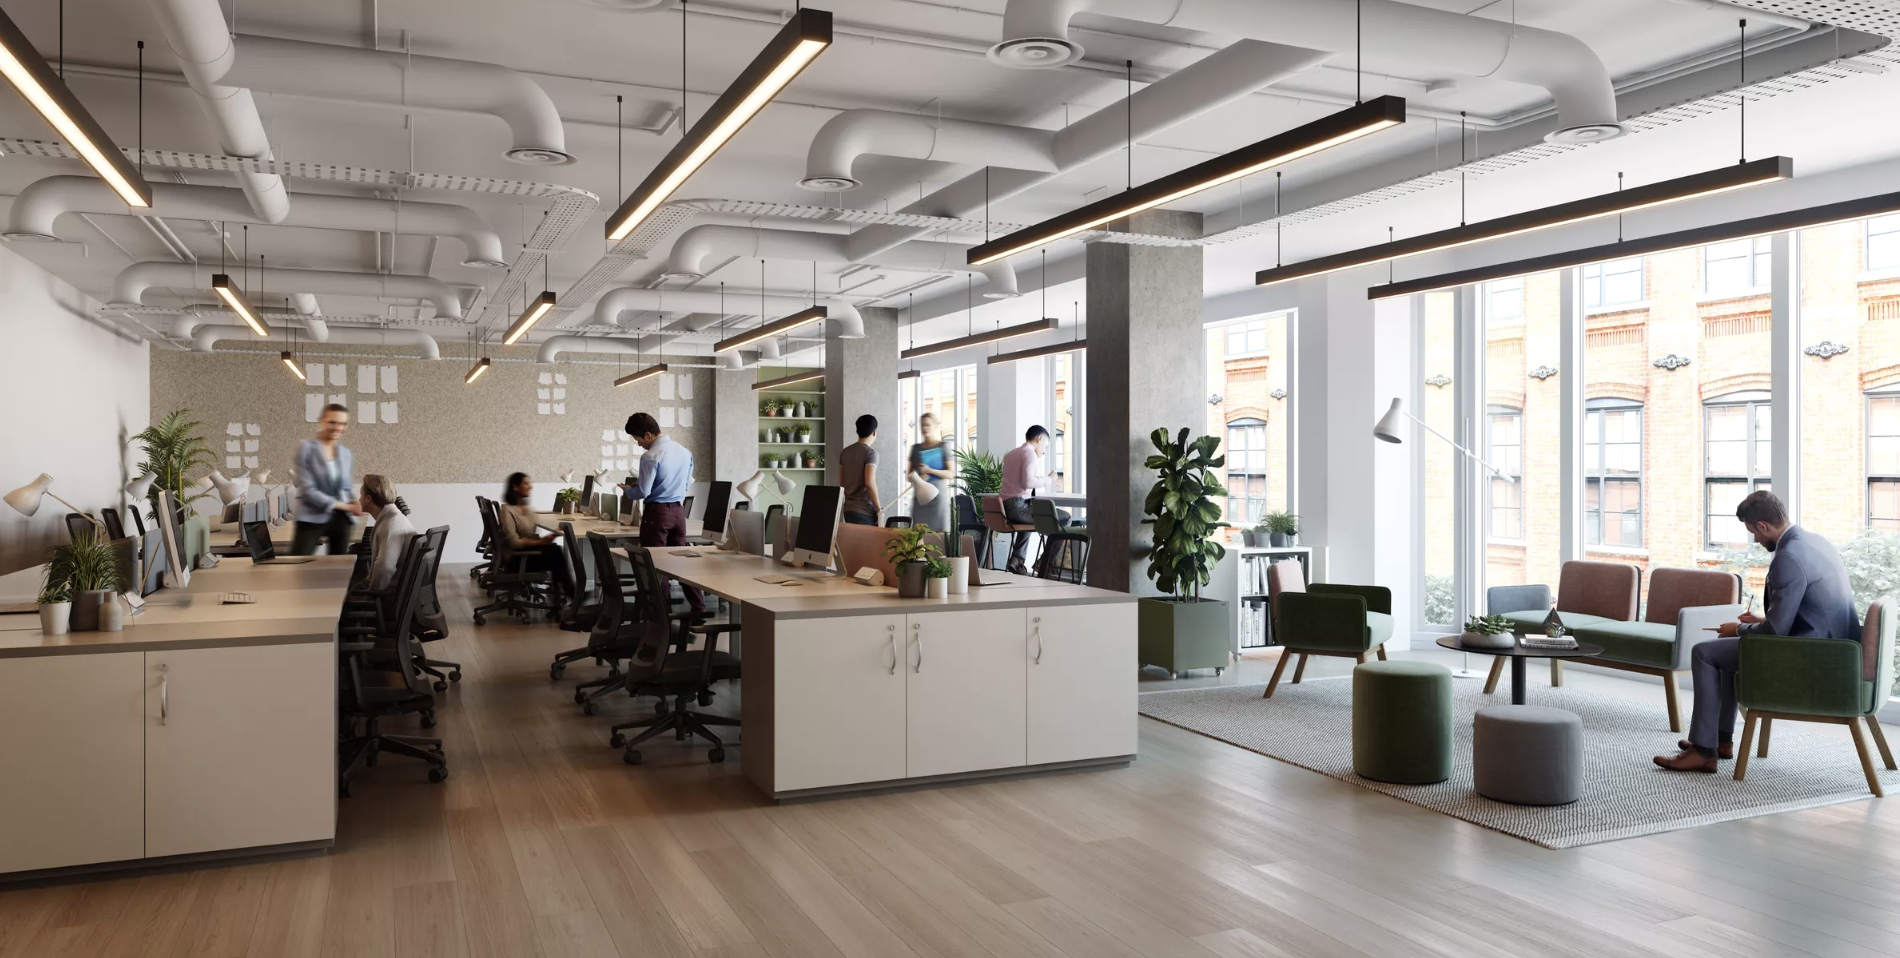 123 Victoria Street is stunning new office space in the heart of Victoria.